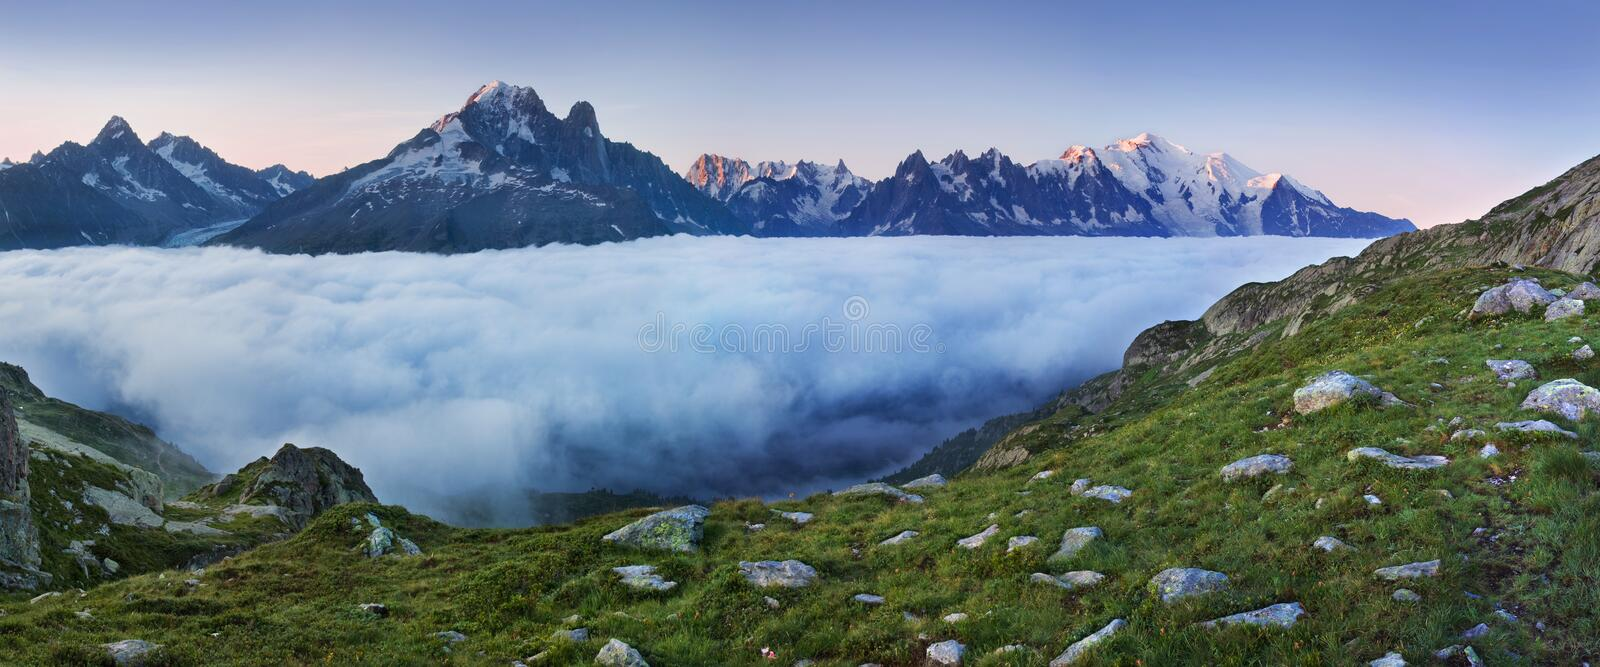 Views of the Mont Blanc glacier from Lac Blanc. Popular tourist attraction. Picturesque and gorgeous mountain scene. royalty free stock image